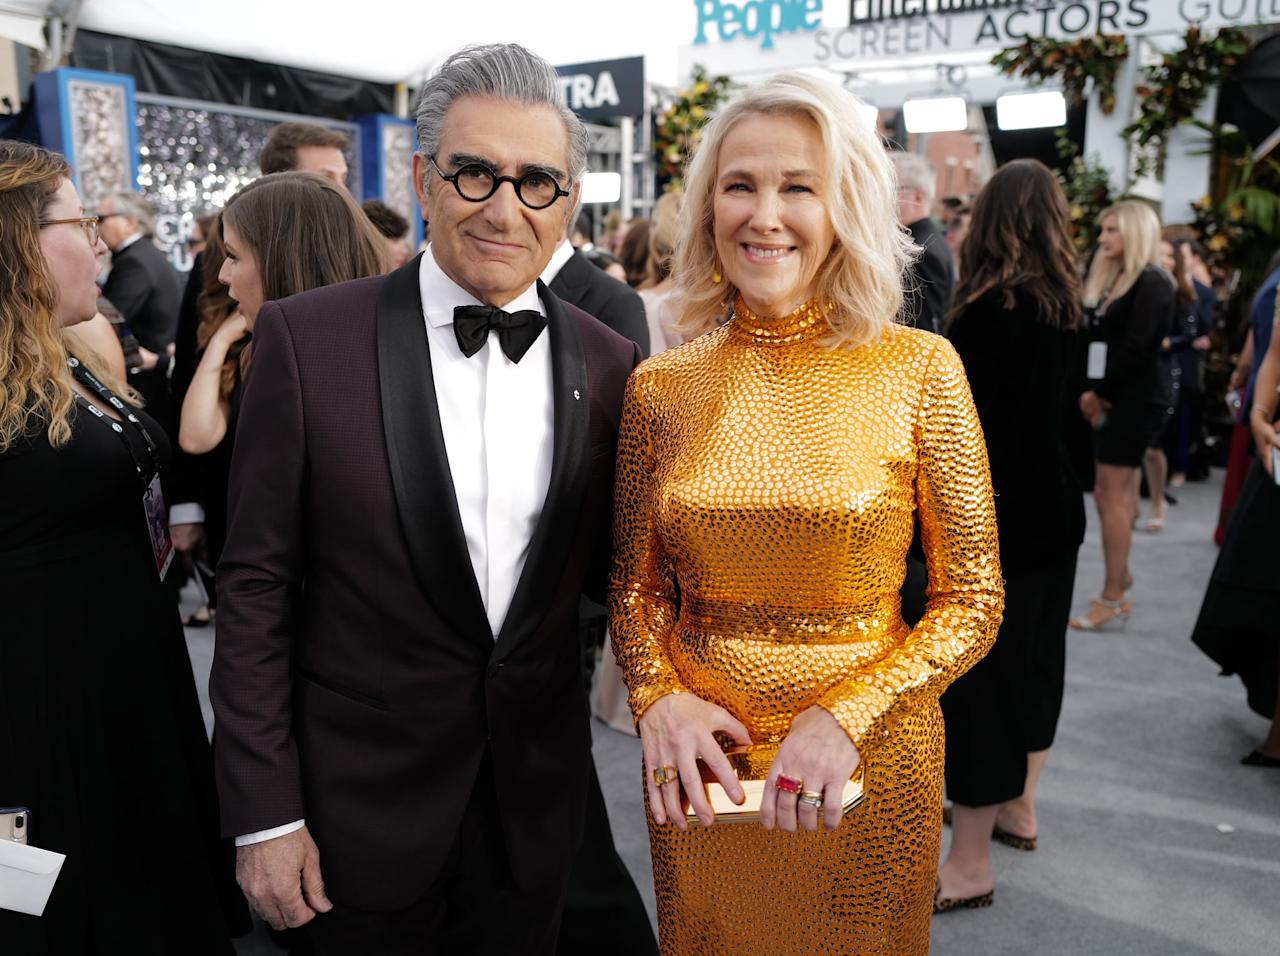 """<ul> <li><strong>On <a href=""""http://www.buzzfeed.com/jarettwieselman/eugene-levy-and-catherine-ohara-look-back-on-their-40-year-f"""" target=""""_blank"""" class=""""ga-track"""" data-ga-category=""""internal click"""" data-ga-label=""""http://www.buzzfeed.com/jarettwieselman/eugene-levy-and-catherine-ohara-look-back-on-their-40-year-f"""" data-ga-action=""""body text link"""">why she and Eugene work so well together</a></strong>: """"This is the lovely thing about working with a friend who you love and respect, and I really love and respect Eugene - he is really funny, he's very thoughtful in his work, he's a great writer, and a great actor. So even when it gets into an argument, I believe that there's no other crap in the way, it's all about making this the best it can be. And I hope he believes the same of me. It's great.""""</li> <li><strong>On <a href=""""http://www.hollywoodreporter.com/live-feed/schitts-creeks-eugene-levy-catherine-761841"""" target=""""_blank"""" class=""""ga-track"""" data-ga-category=""""internal click"""" data-ga-label=""""http://www.hollywoodreporter.com/live-feed/schitts-creeks-eugene-levy-catherine-761841"""" data-ga-action=""""body text link"""">what she's learned from Eugene about comedy</a>: </strong>""""Eugene wrote more group scenes than anyone else on <strong>SCTV</strong>. His writing was and is very clean and precise. He's generous in his writing great material for others but he doesn't overwrite. His writing inspires and leaves lots to the imagination.""""</li> </ul>"""